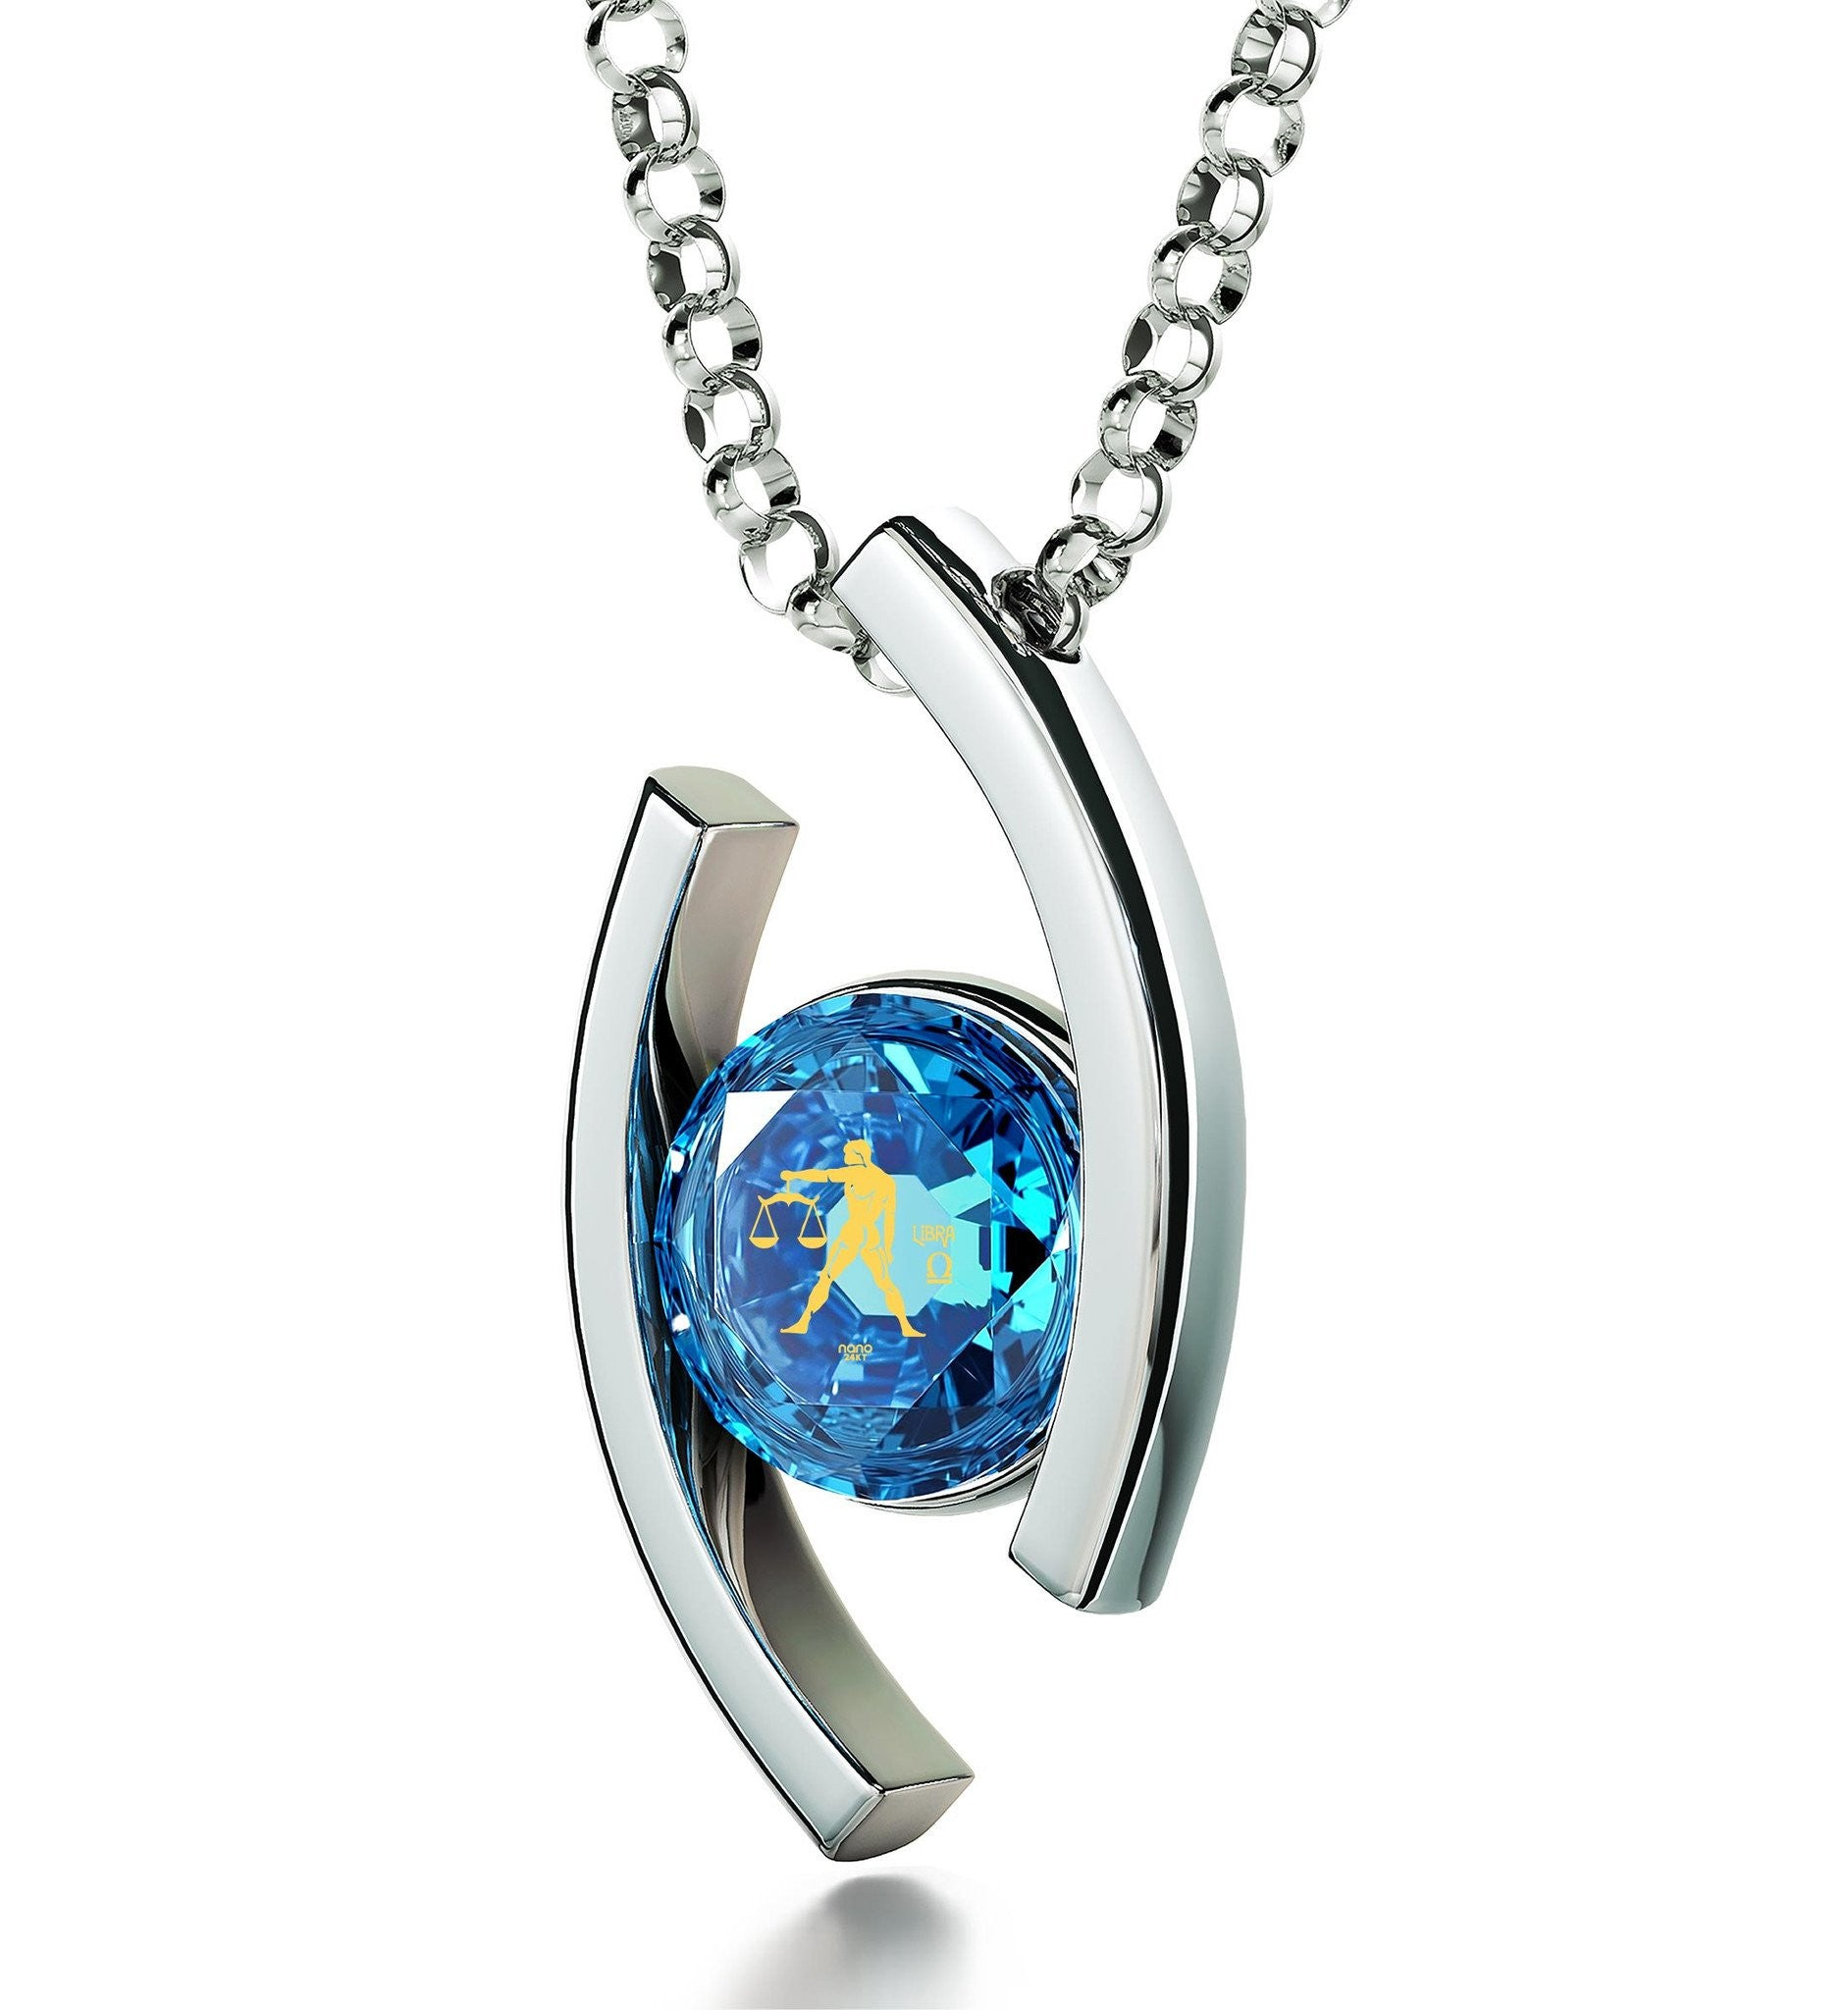 """Libra Jewelry With Zodiac Imprint, Special Gifts for Sisters, Christmas Presents for Your Best Friend, Blue Stone Necklace"""